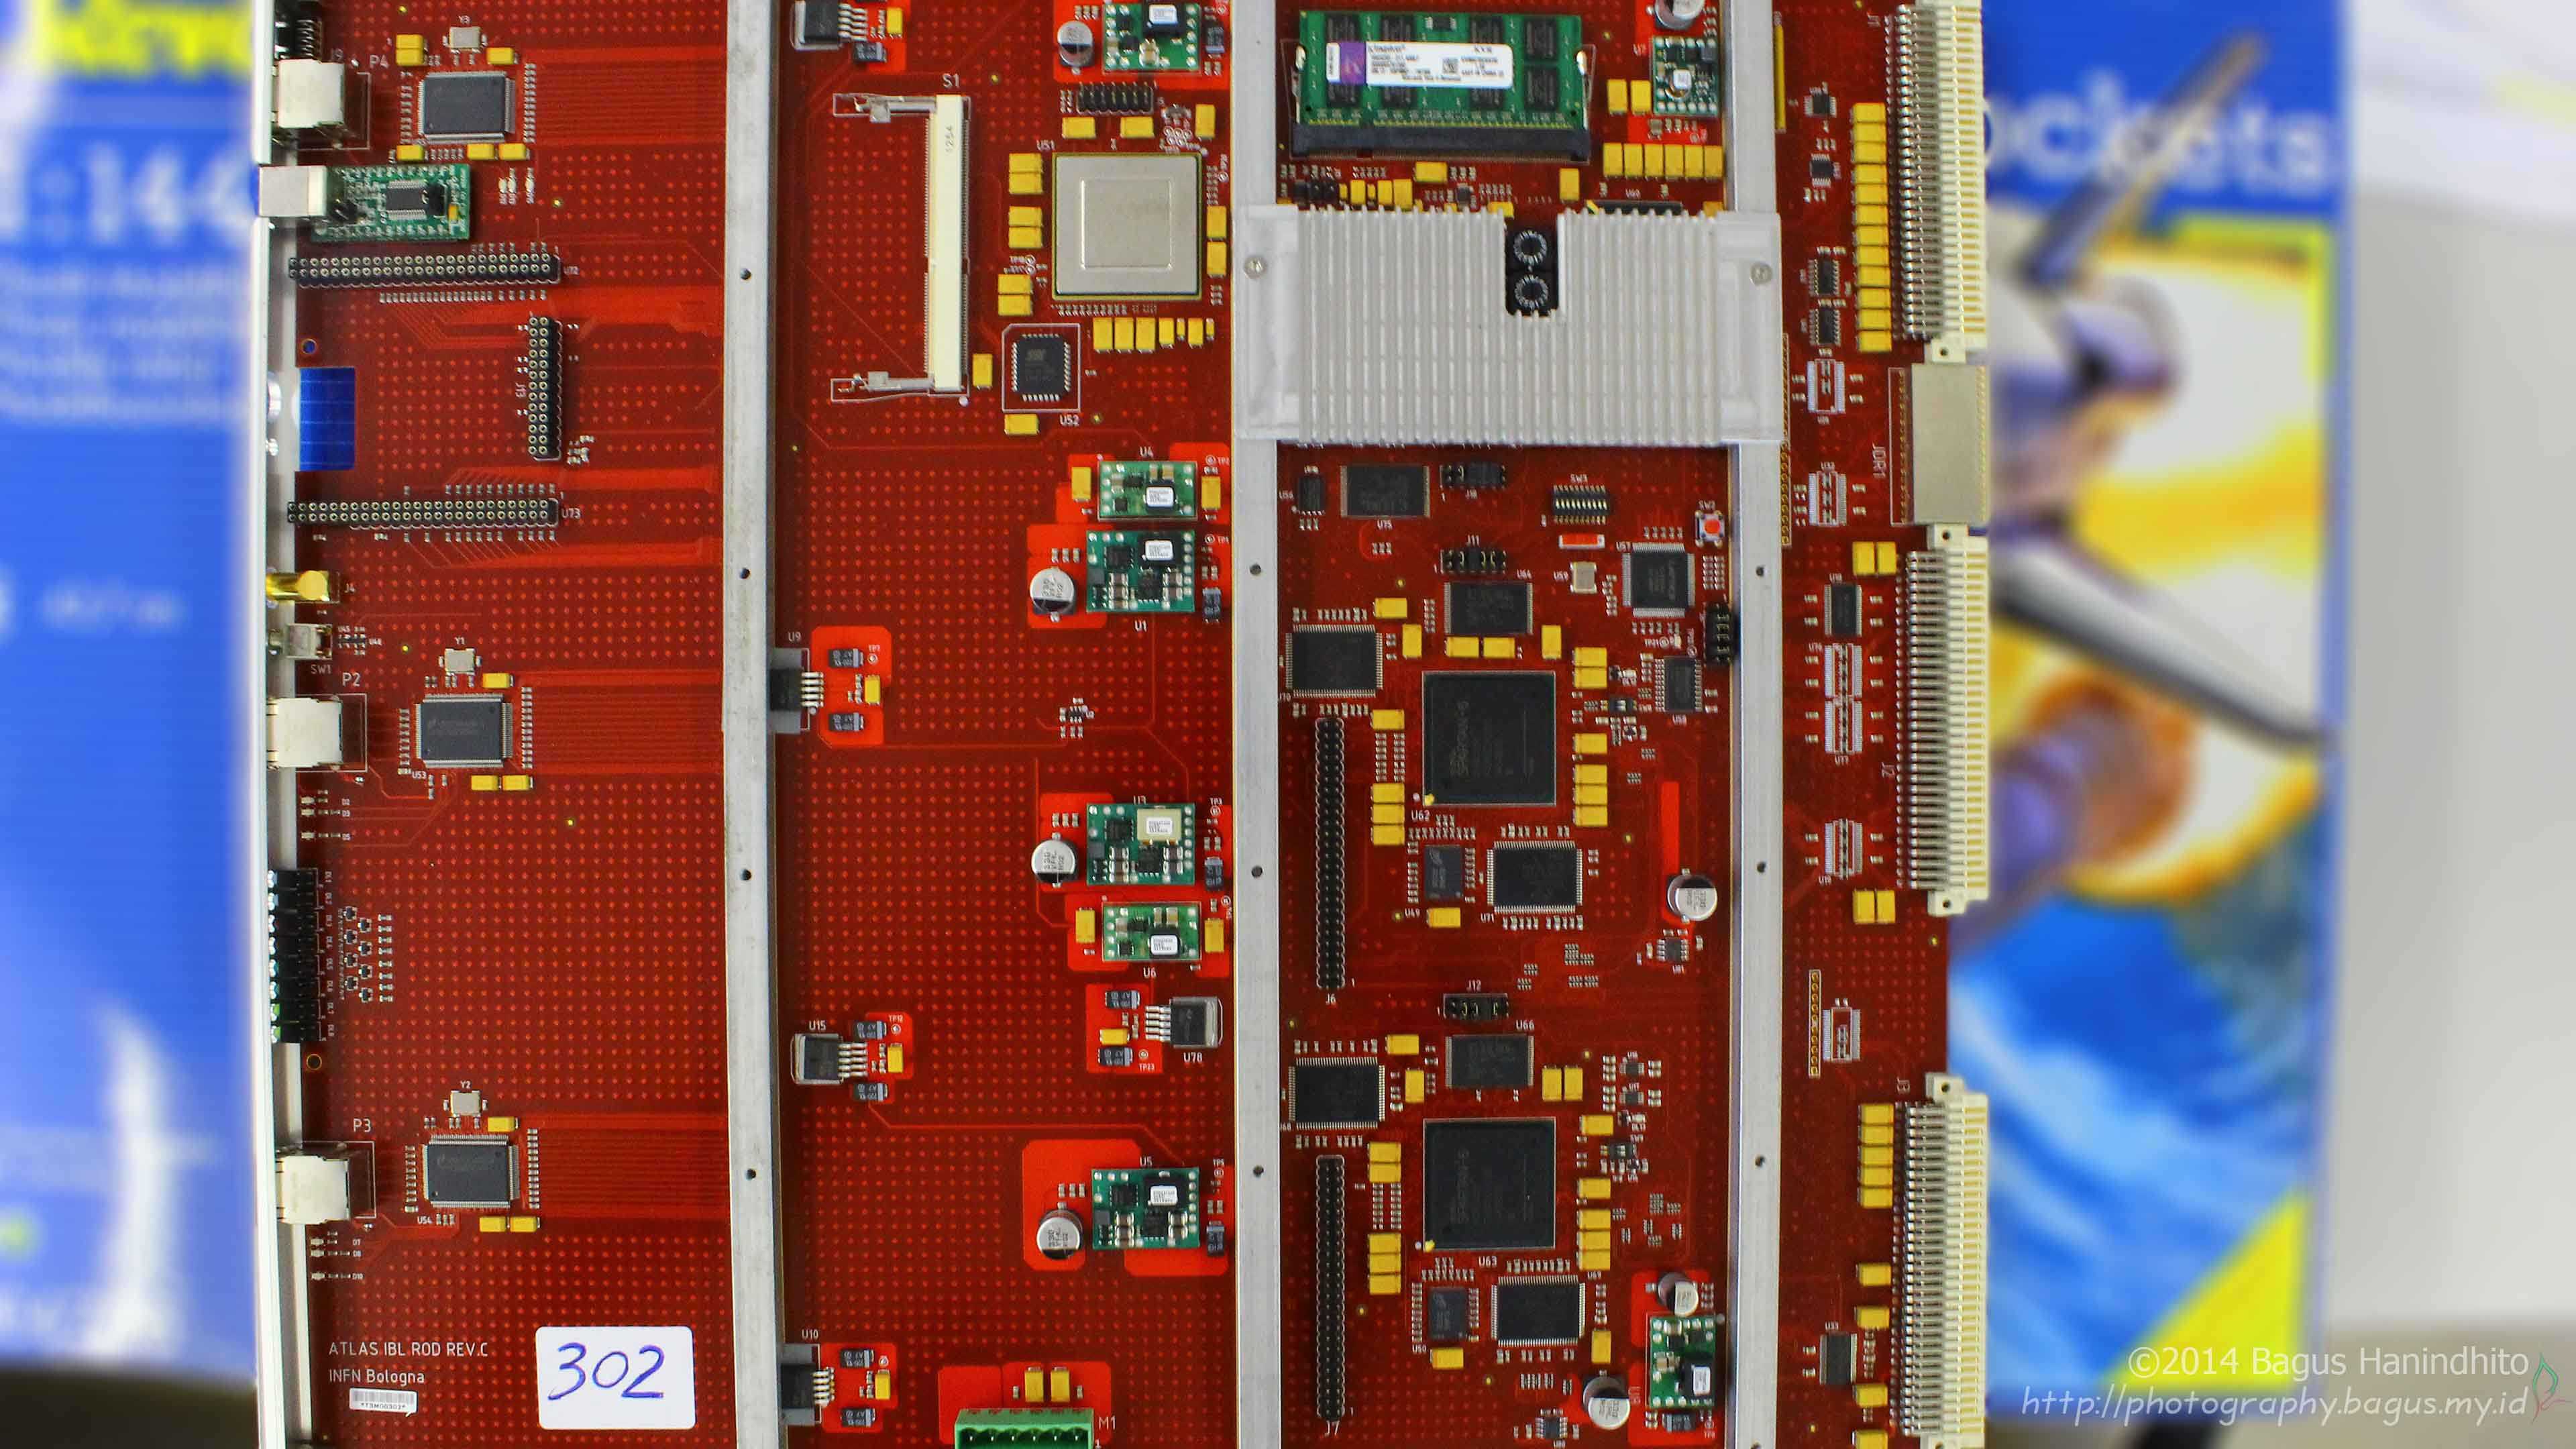 The Read-Out-Driver Module layout from top. There are three Spartan6 FPGAs, a Virtex5 FPGA, and a Texas Instruments DSP.